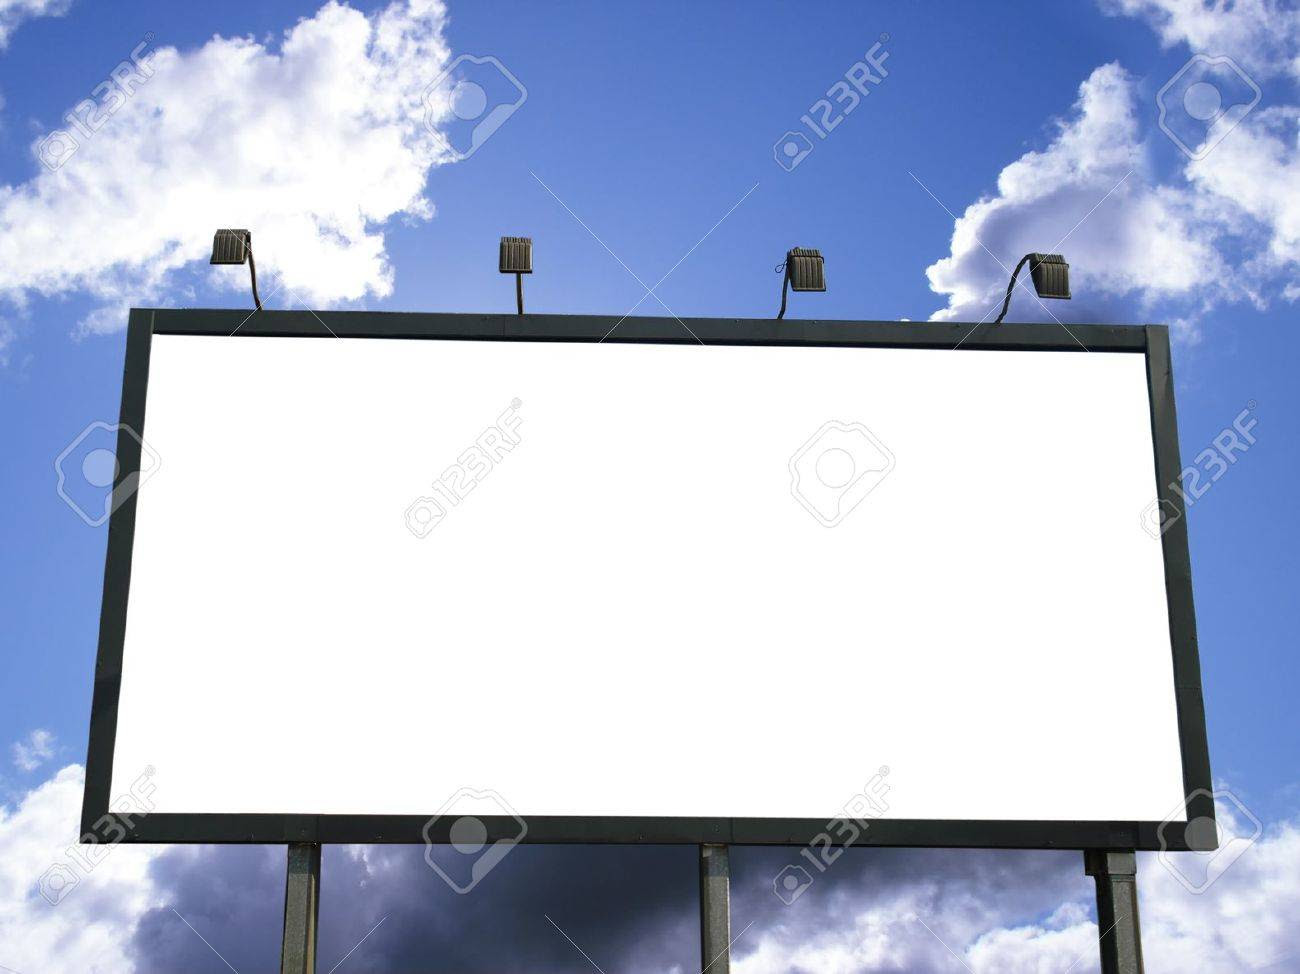 Blank Outdoor Billboard For Advertising On Blue Sky With Clouds ...